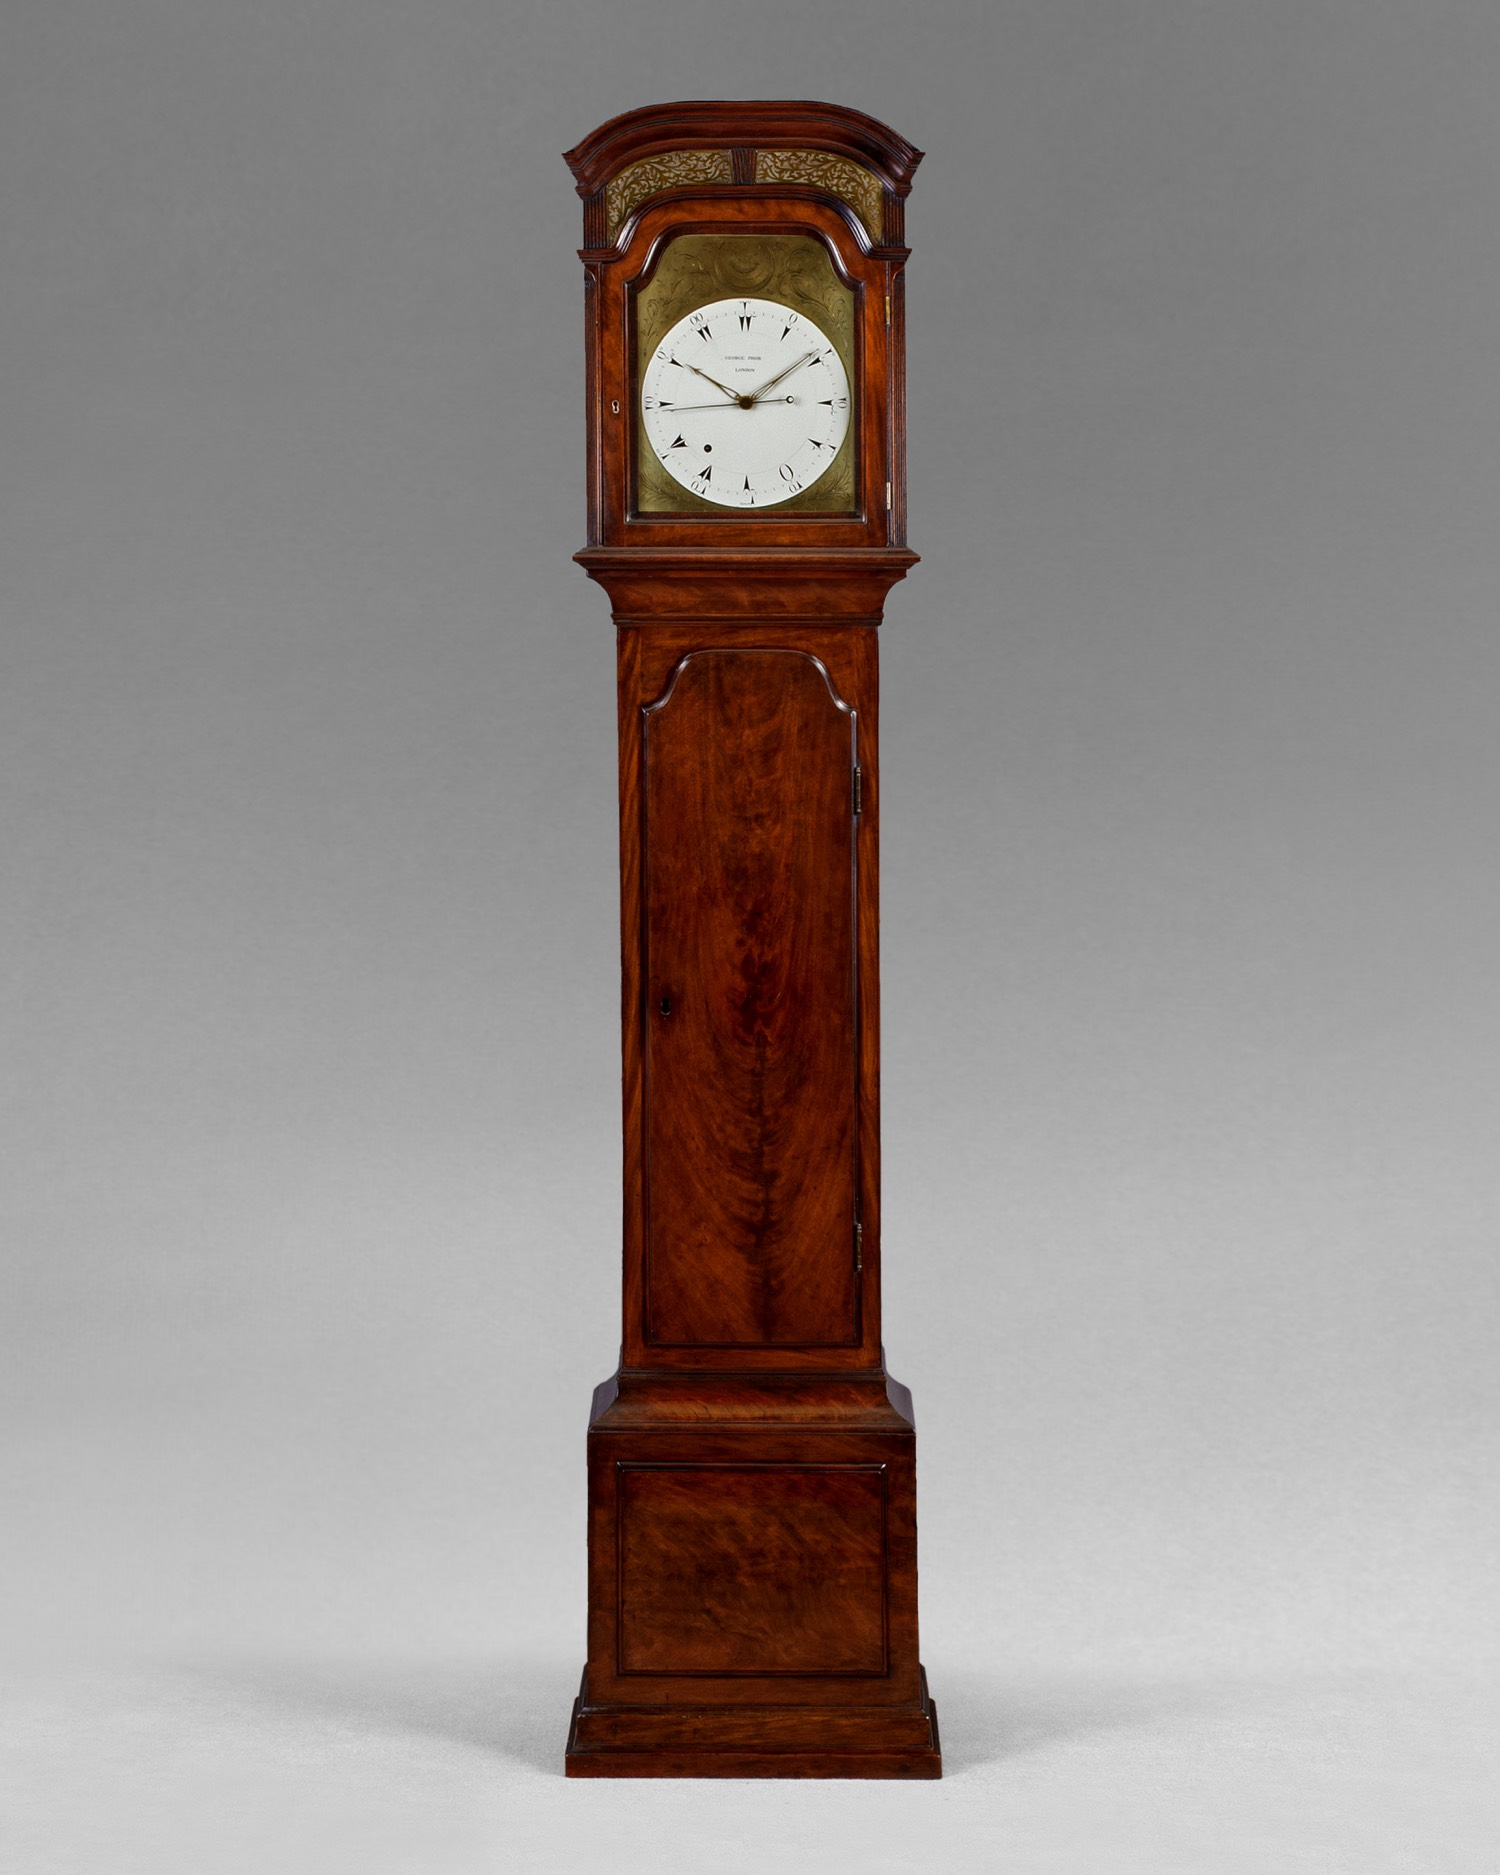 GEORGE PRIOR, A LATE 18TH CENTURY REGULATOR LONGCASE